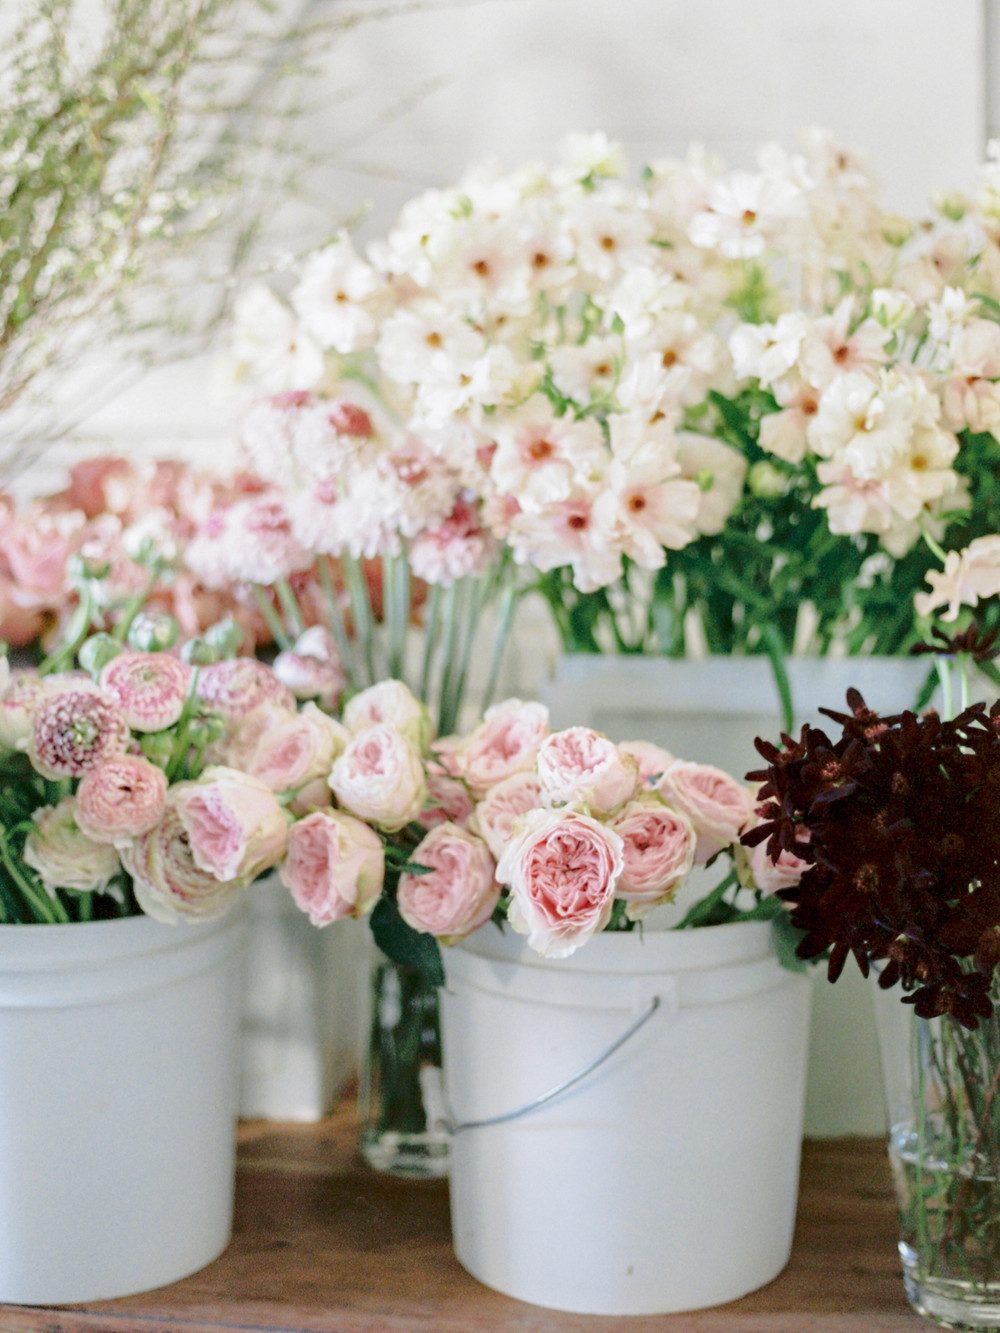 Buckets full of blush and white flowers